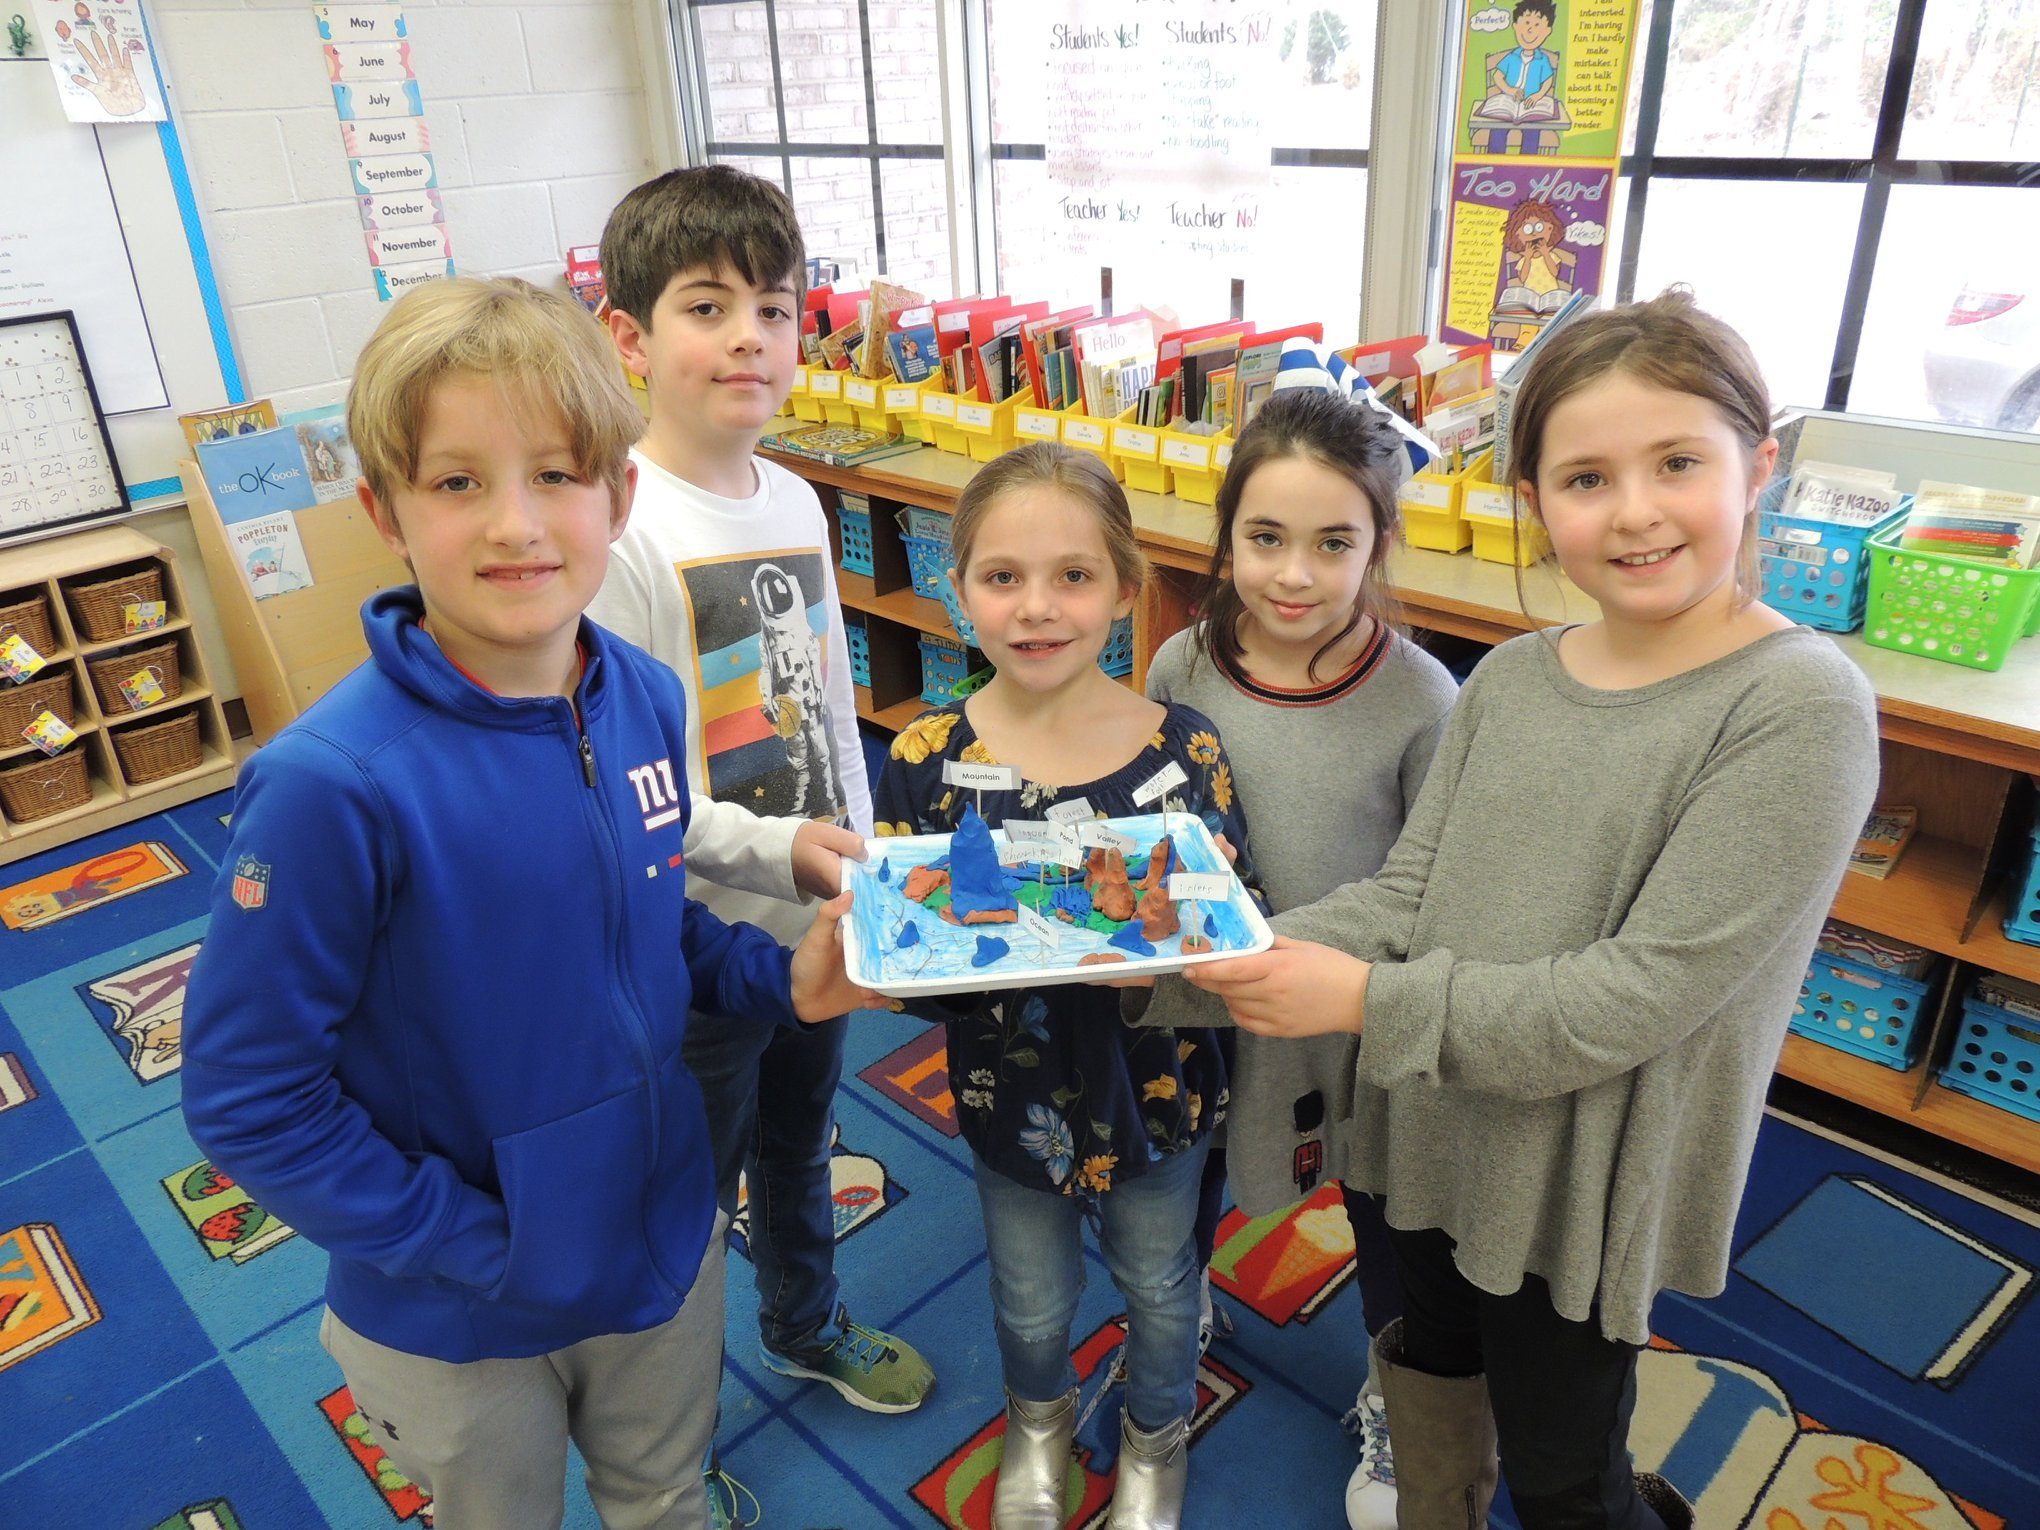 LH 2nd Graders Show Landform Project